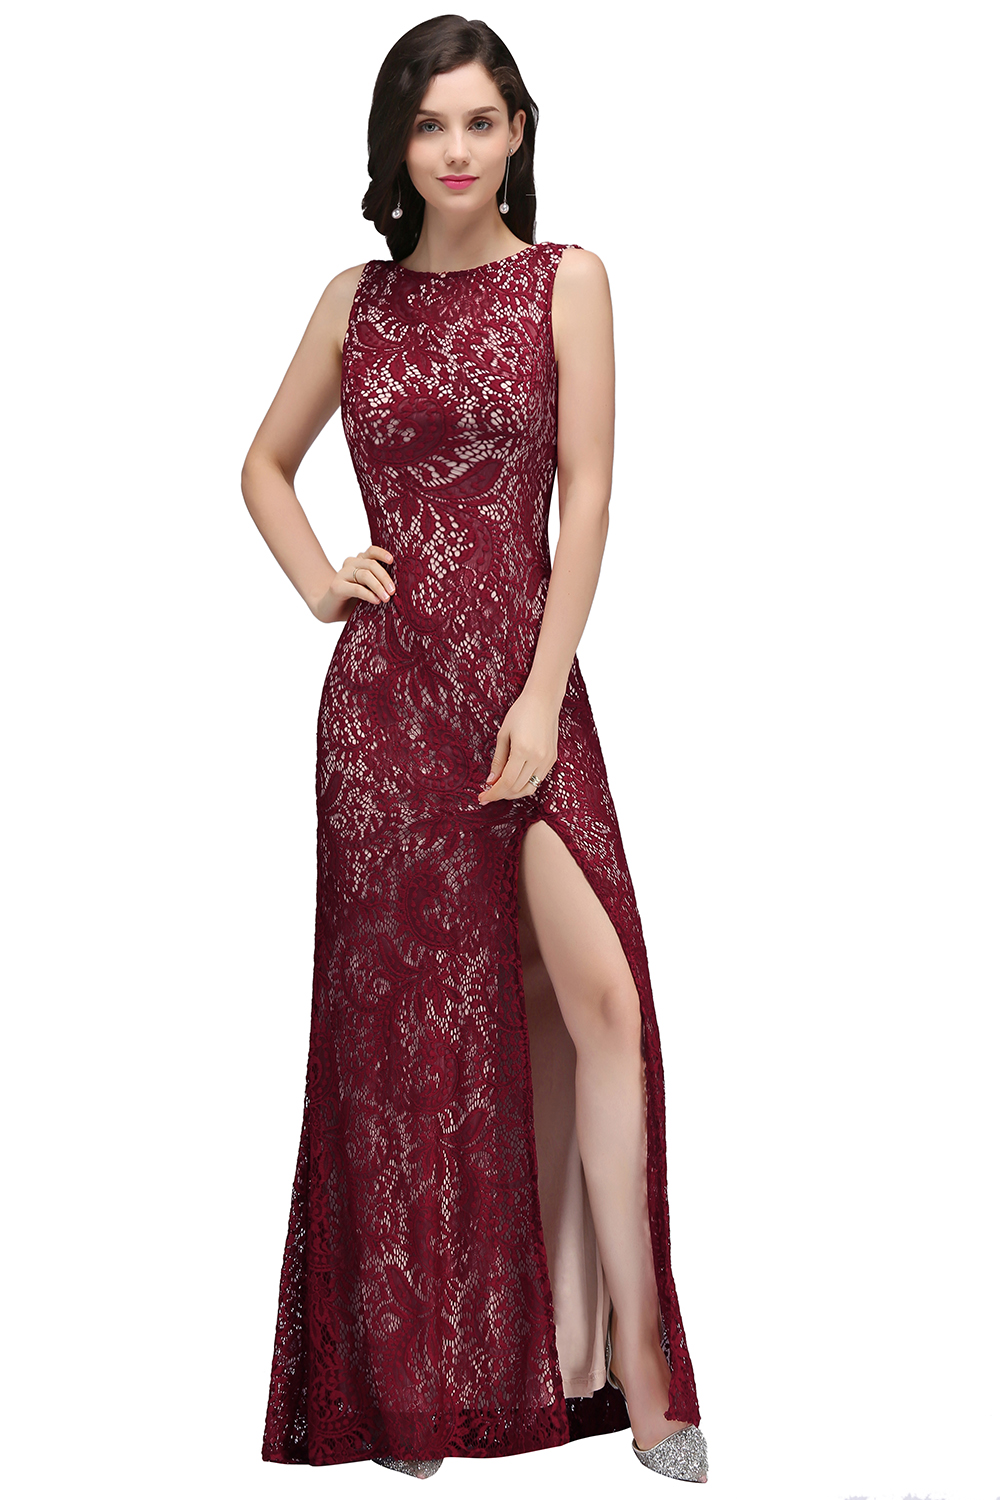 2019 Sexy High Split Lace Mermaid Long Prom Dresses Sleeveless Applique Prom Gown Gala Dress Vesitdo de festa